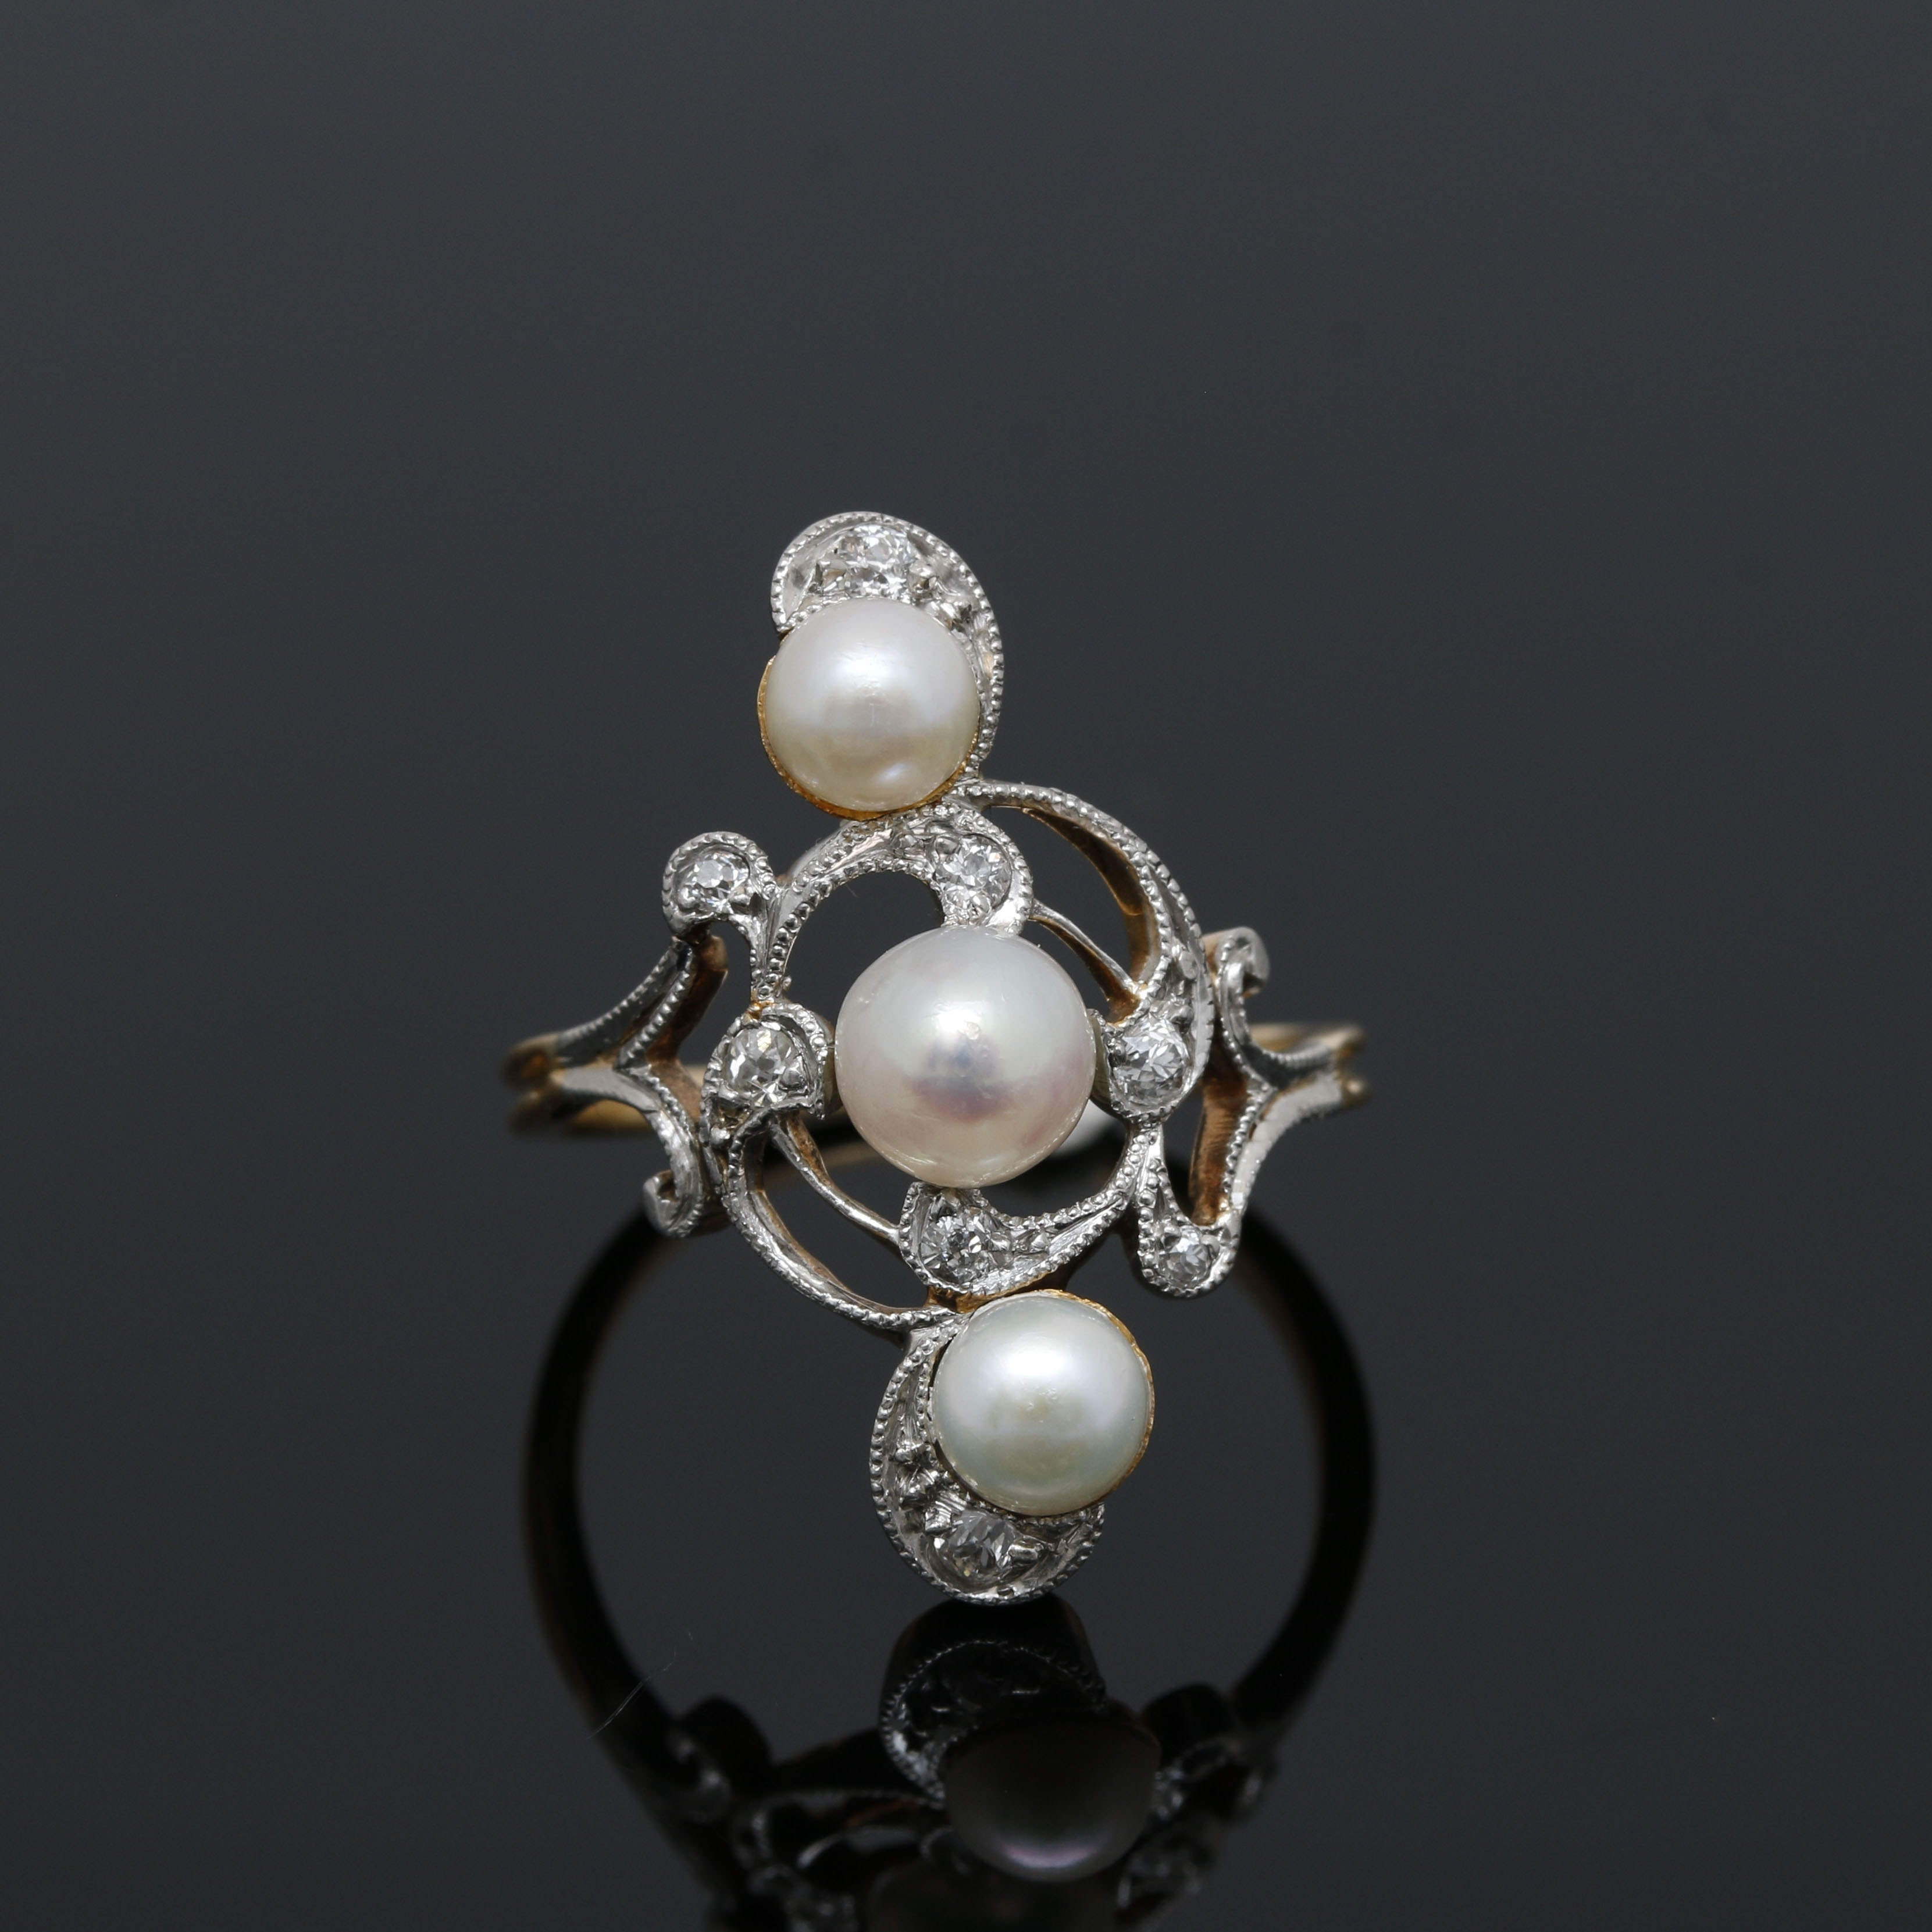 Belle Époque 18K Yellow Gold and Platinum Cultured Pearl and Diamond Ring